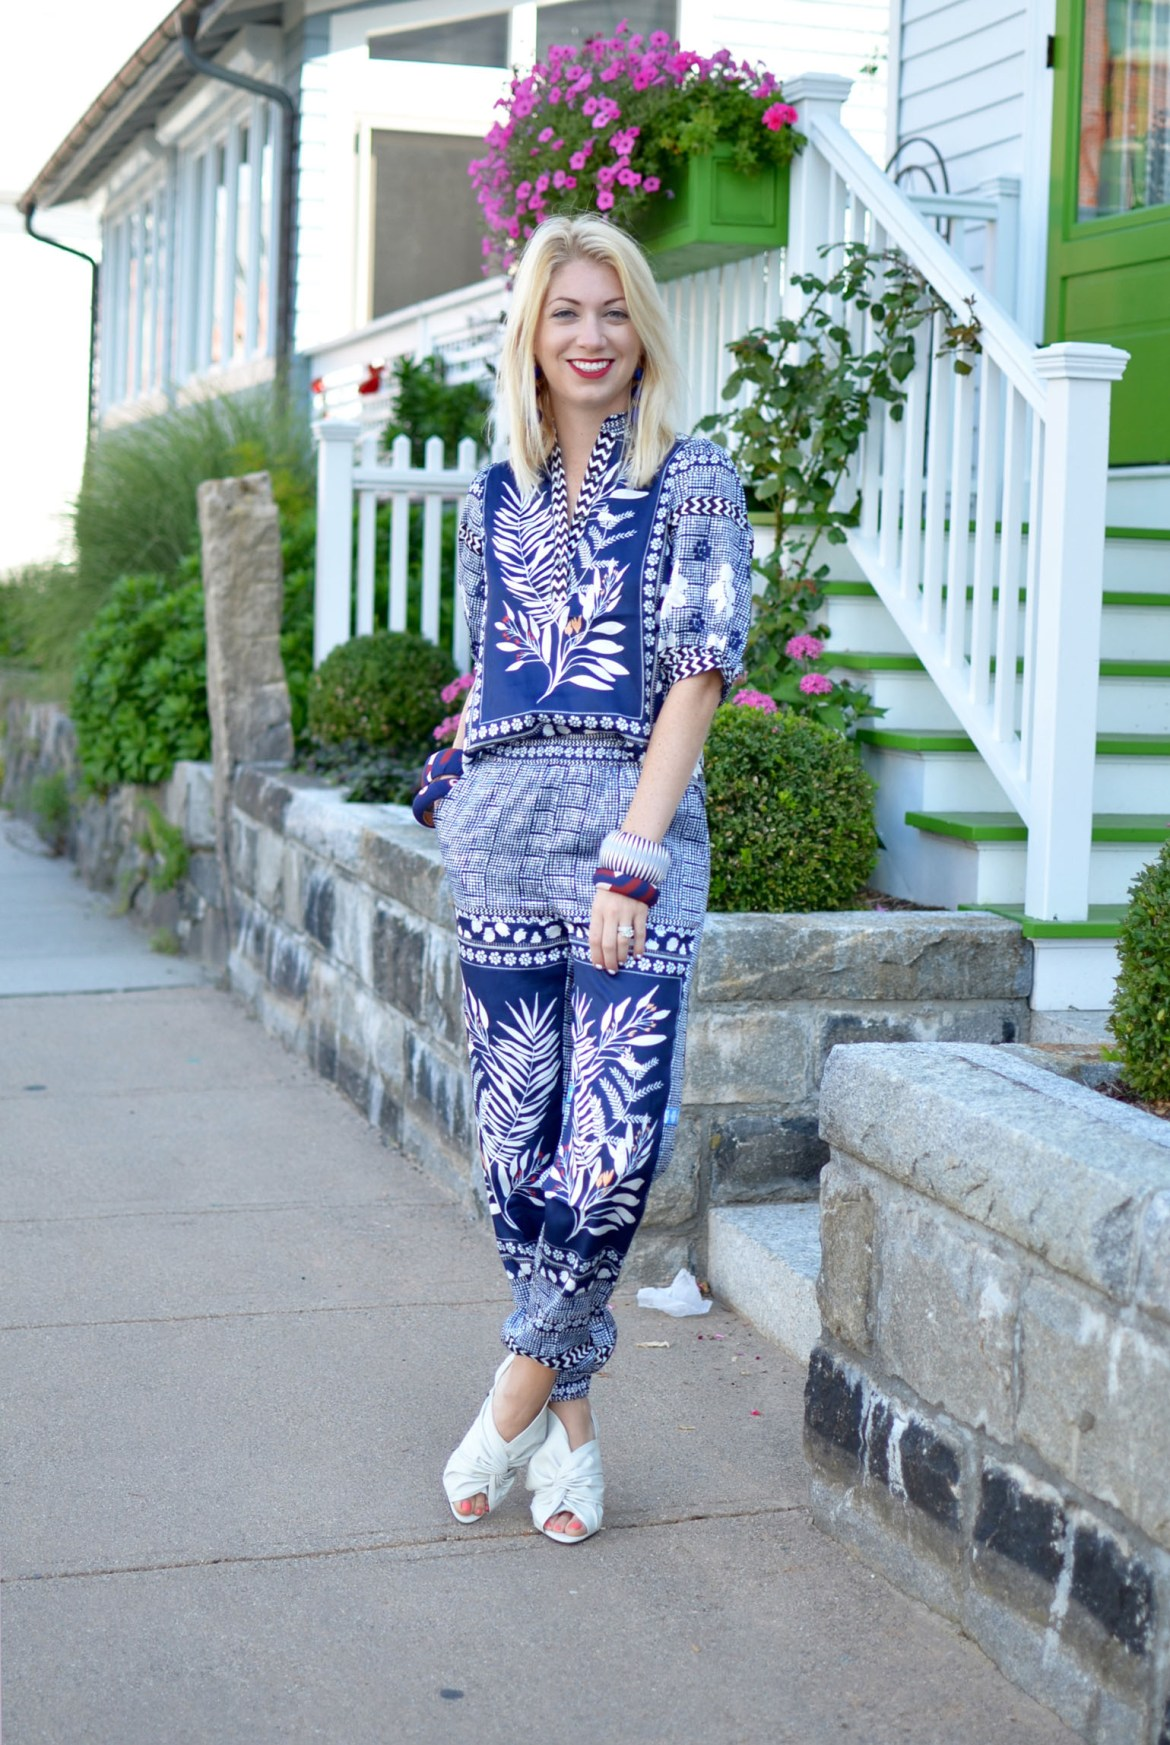 Stefanie of The Style Safari wears dezzal blue printed blouse and pants twinset, defining your style // thestylesafari.com